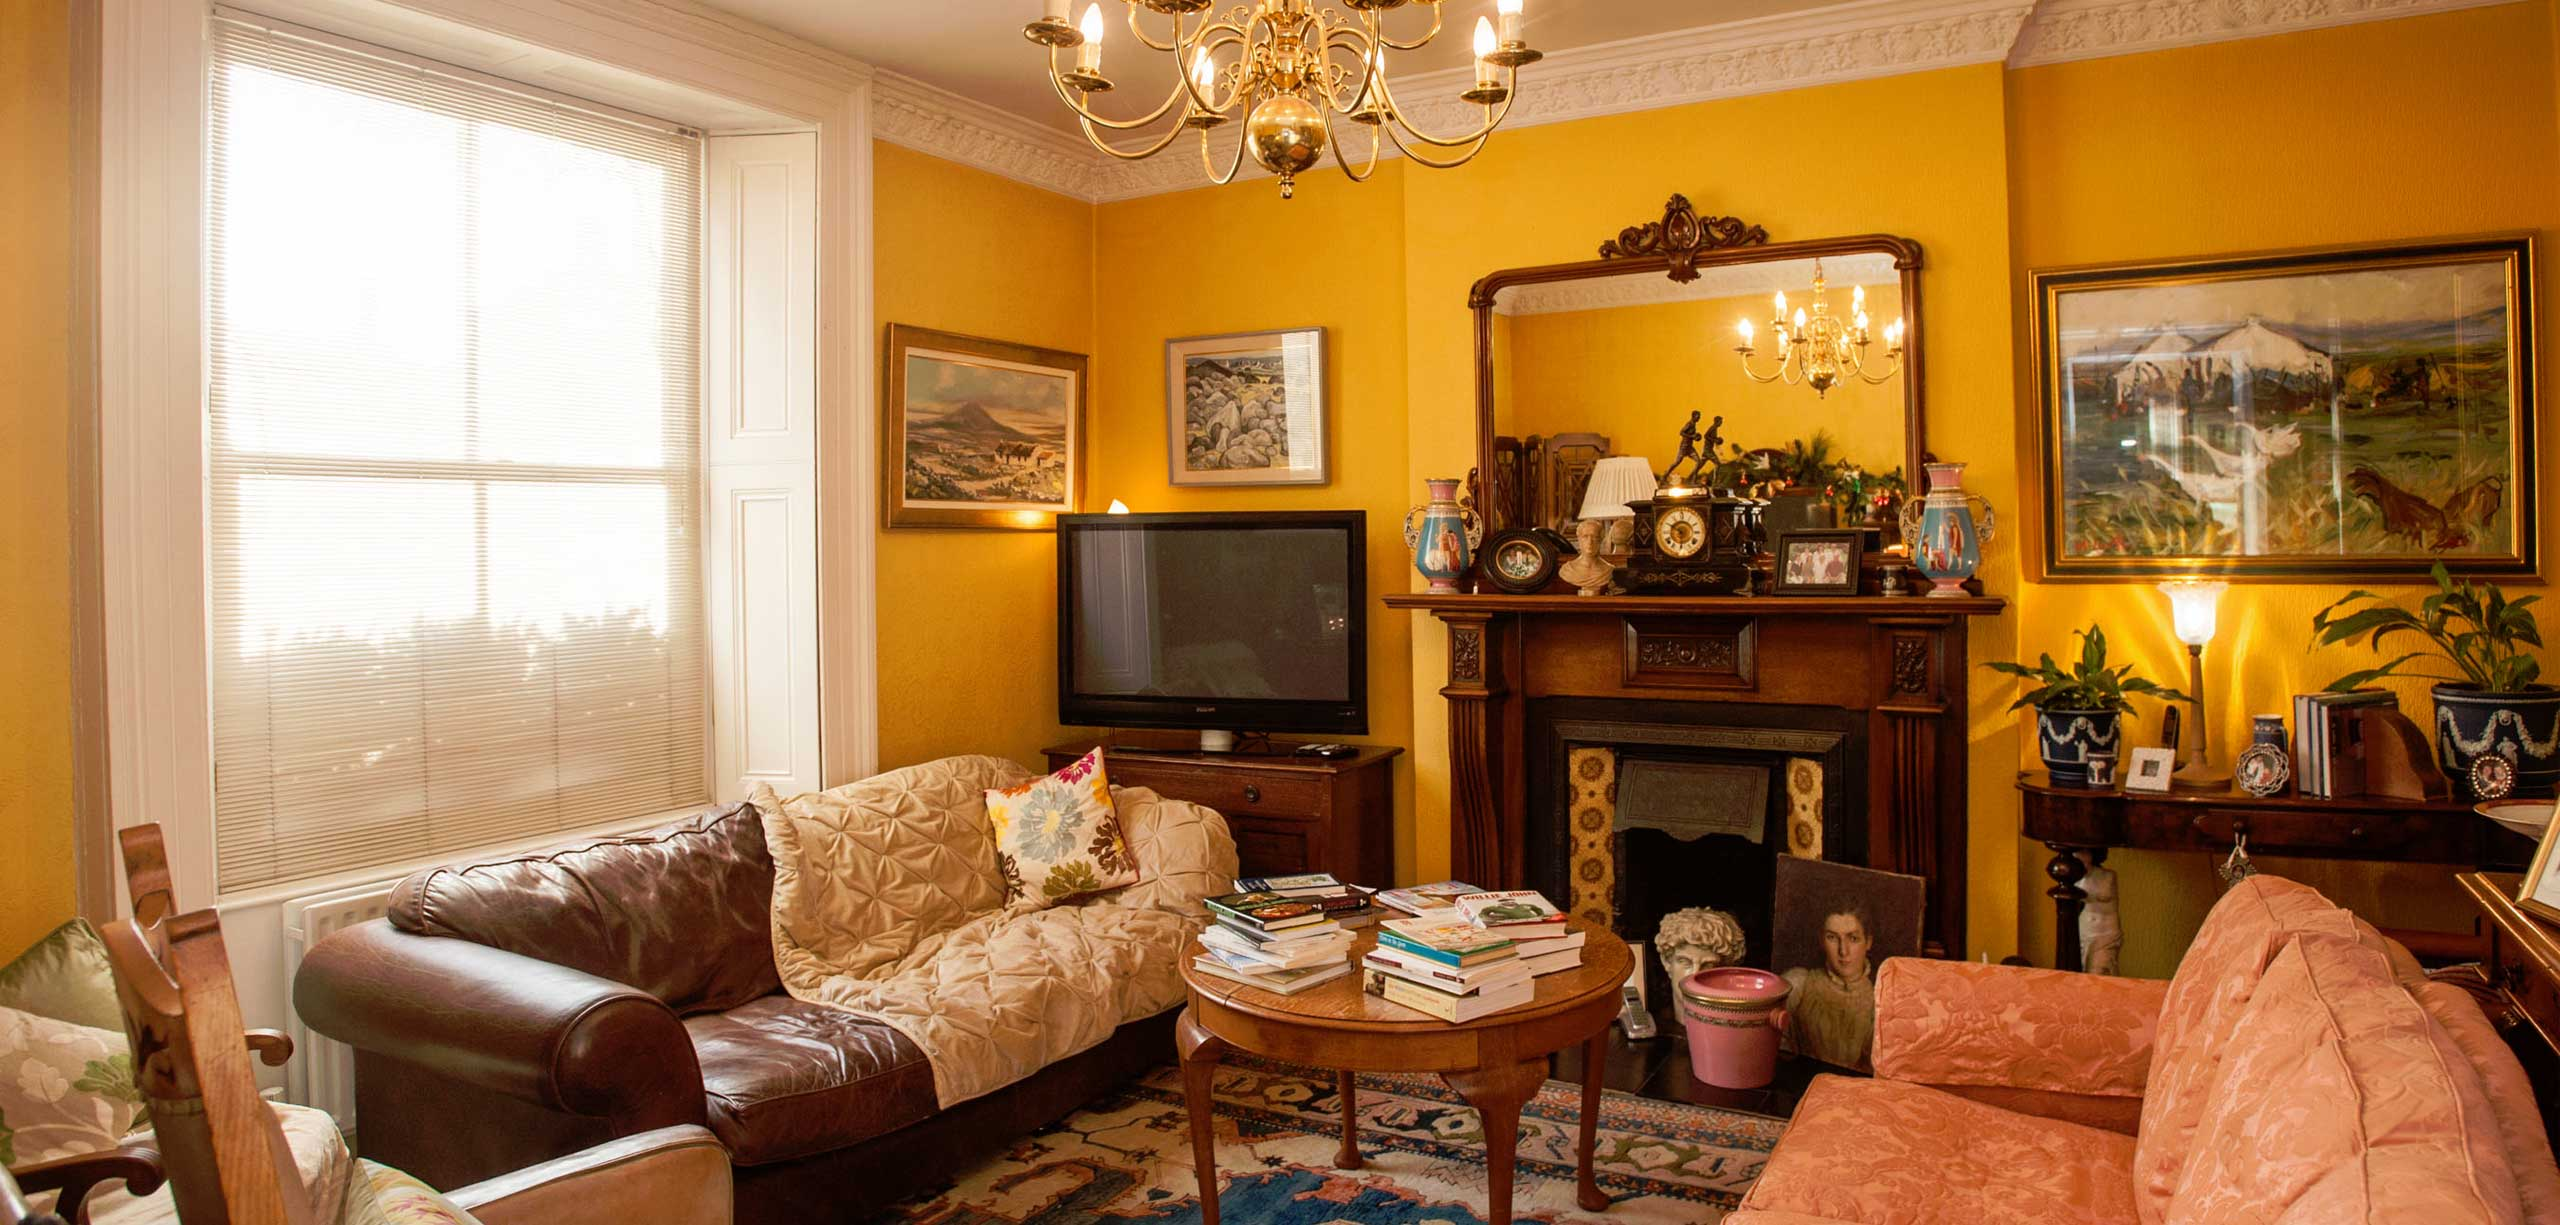 Laurel Villa Guest House | 4 Star bed and breakfast accommodation in Magherafelt Town | perfect for a relaxing overnight or weekend break